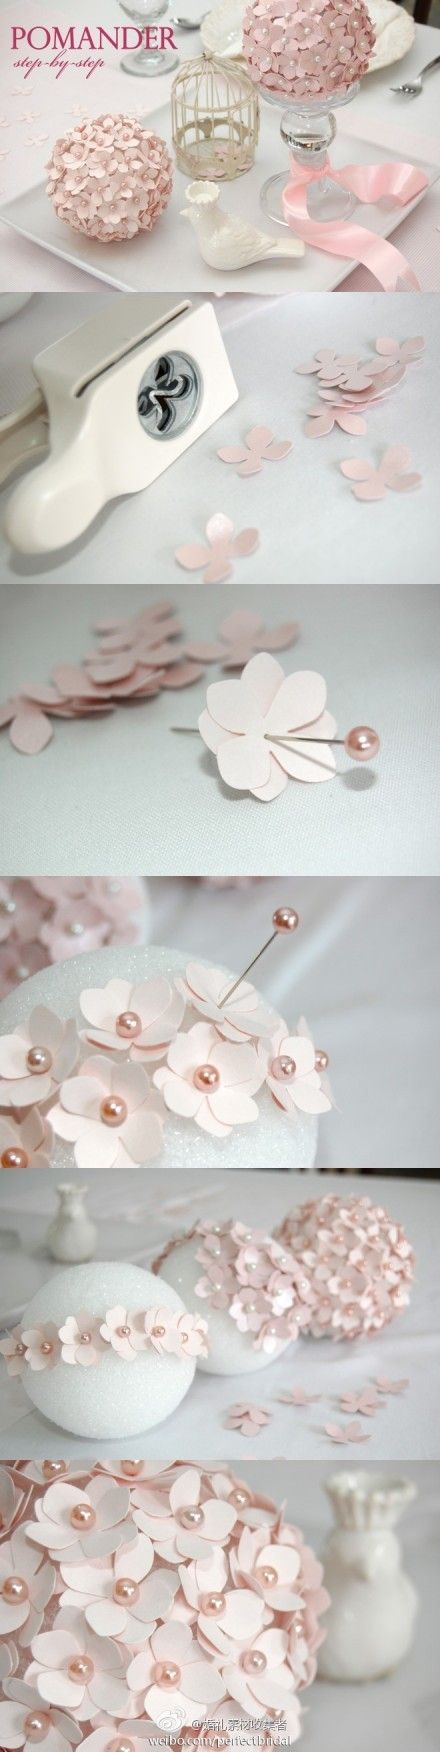 Paper flower balls -- @Erin Waller ... you should make these for your wedding lol